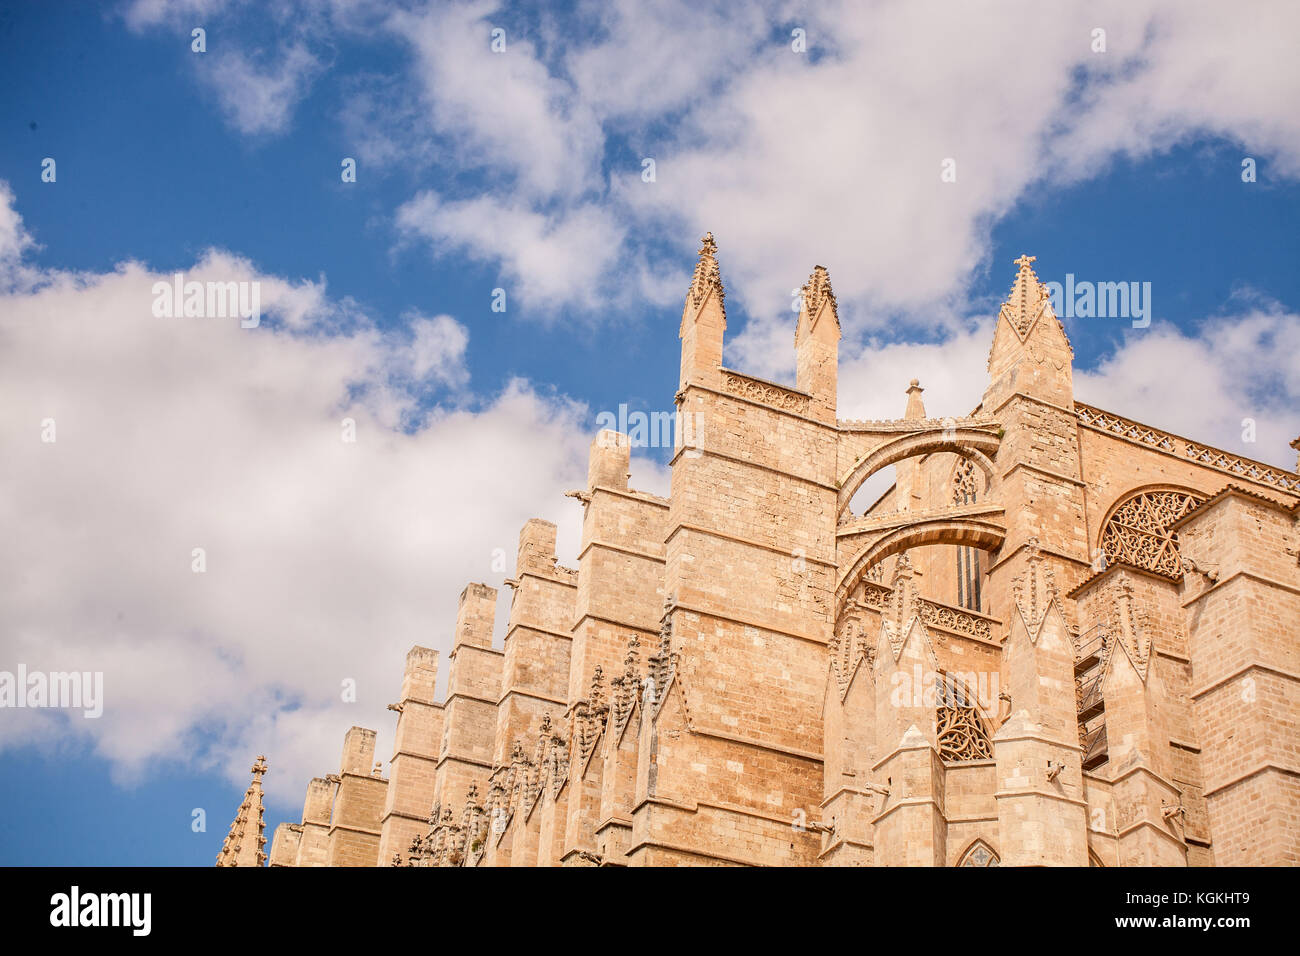 Cathedral Le Seu in Palma de Mallorca, a popular tourist destination - Stock Image